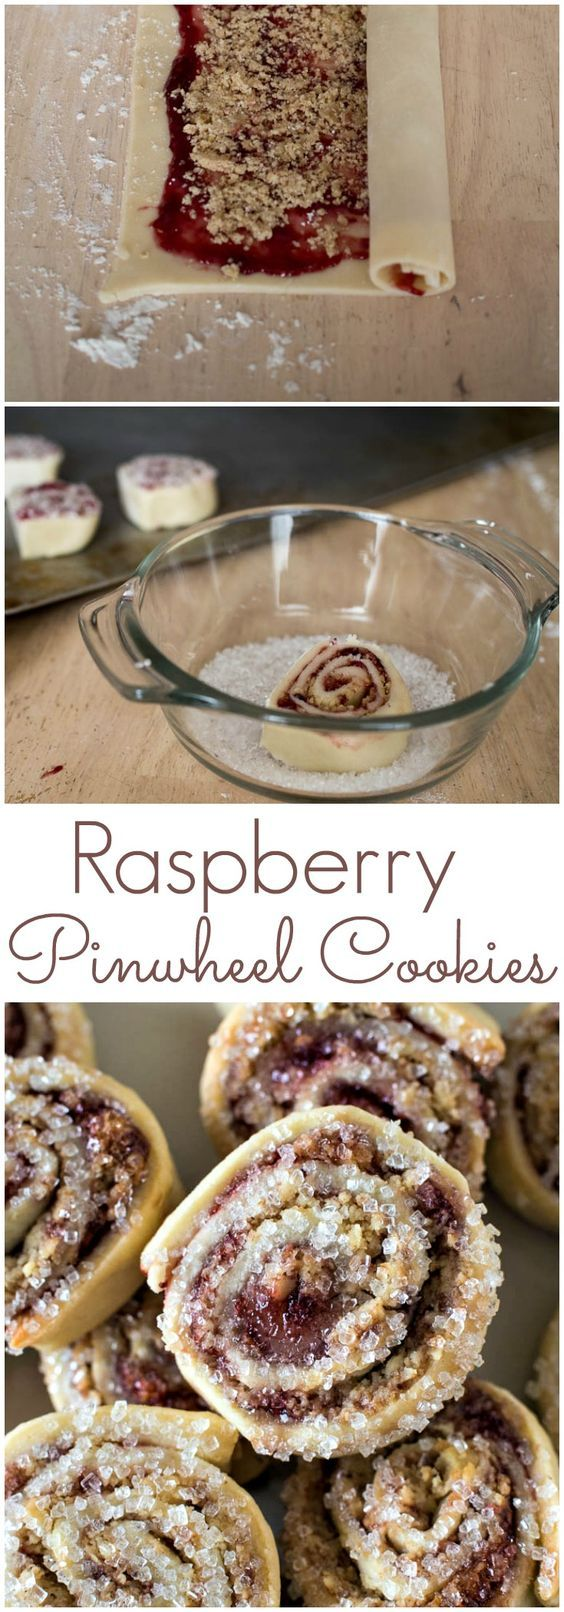 Raspberry Pinwheel Cookies - an easy holiday cookie made by rolling up dough filled with raspberry jam and dipping the cookies in sugar